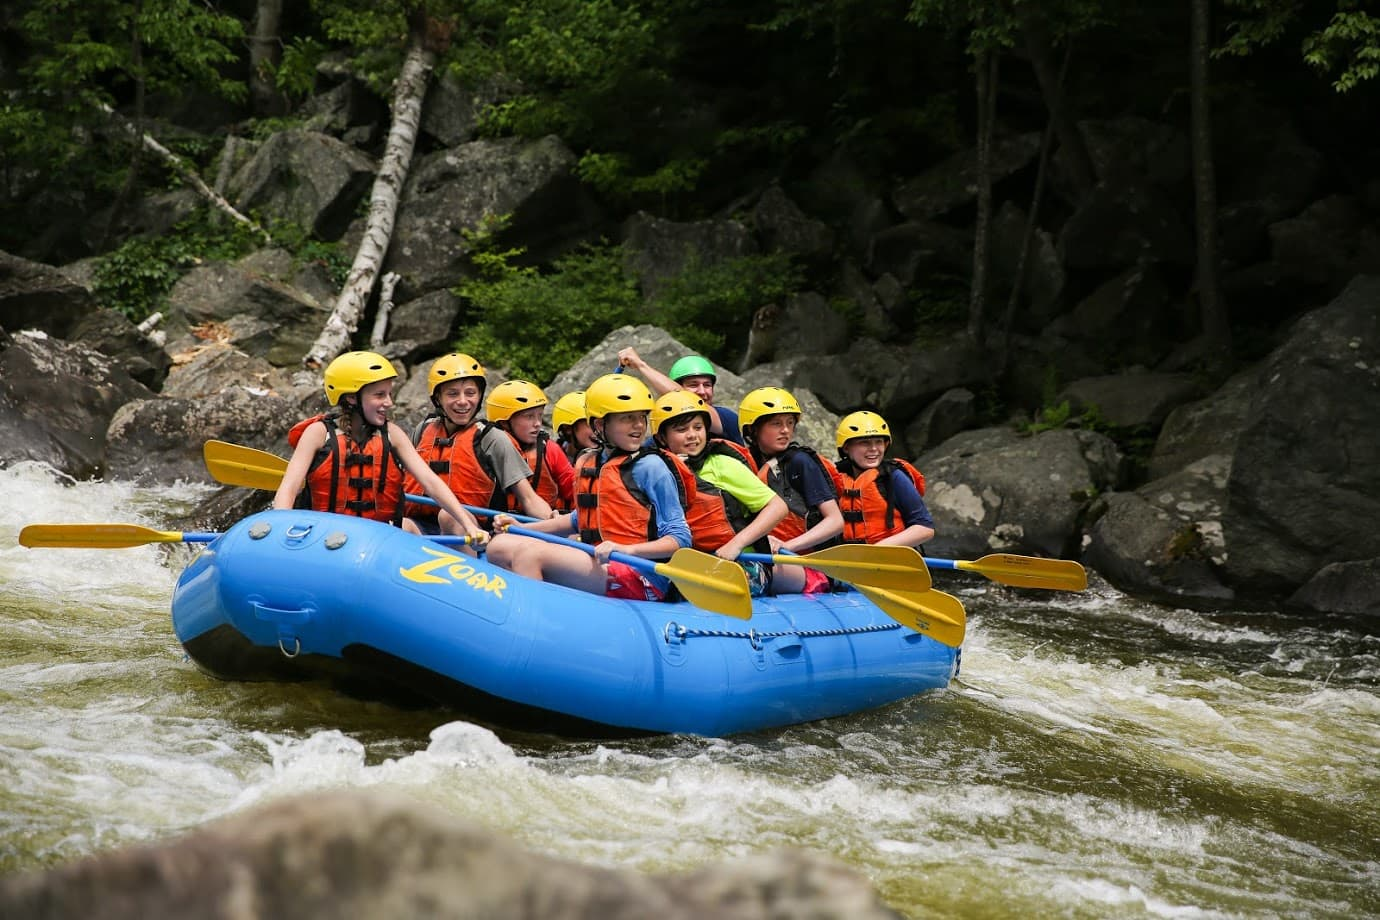 Teen rafting adventure program in New England